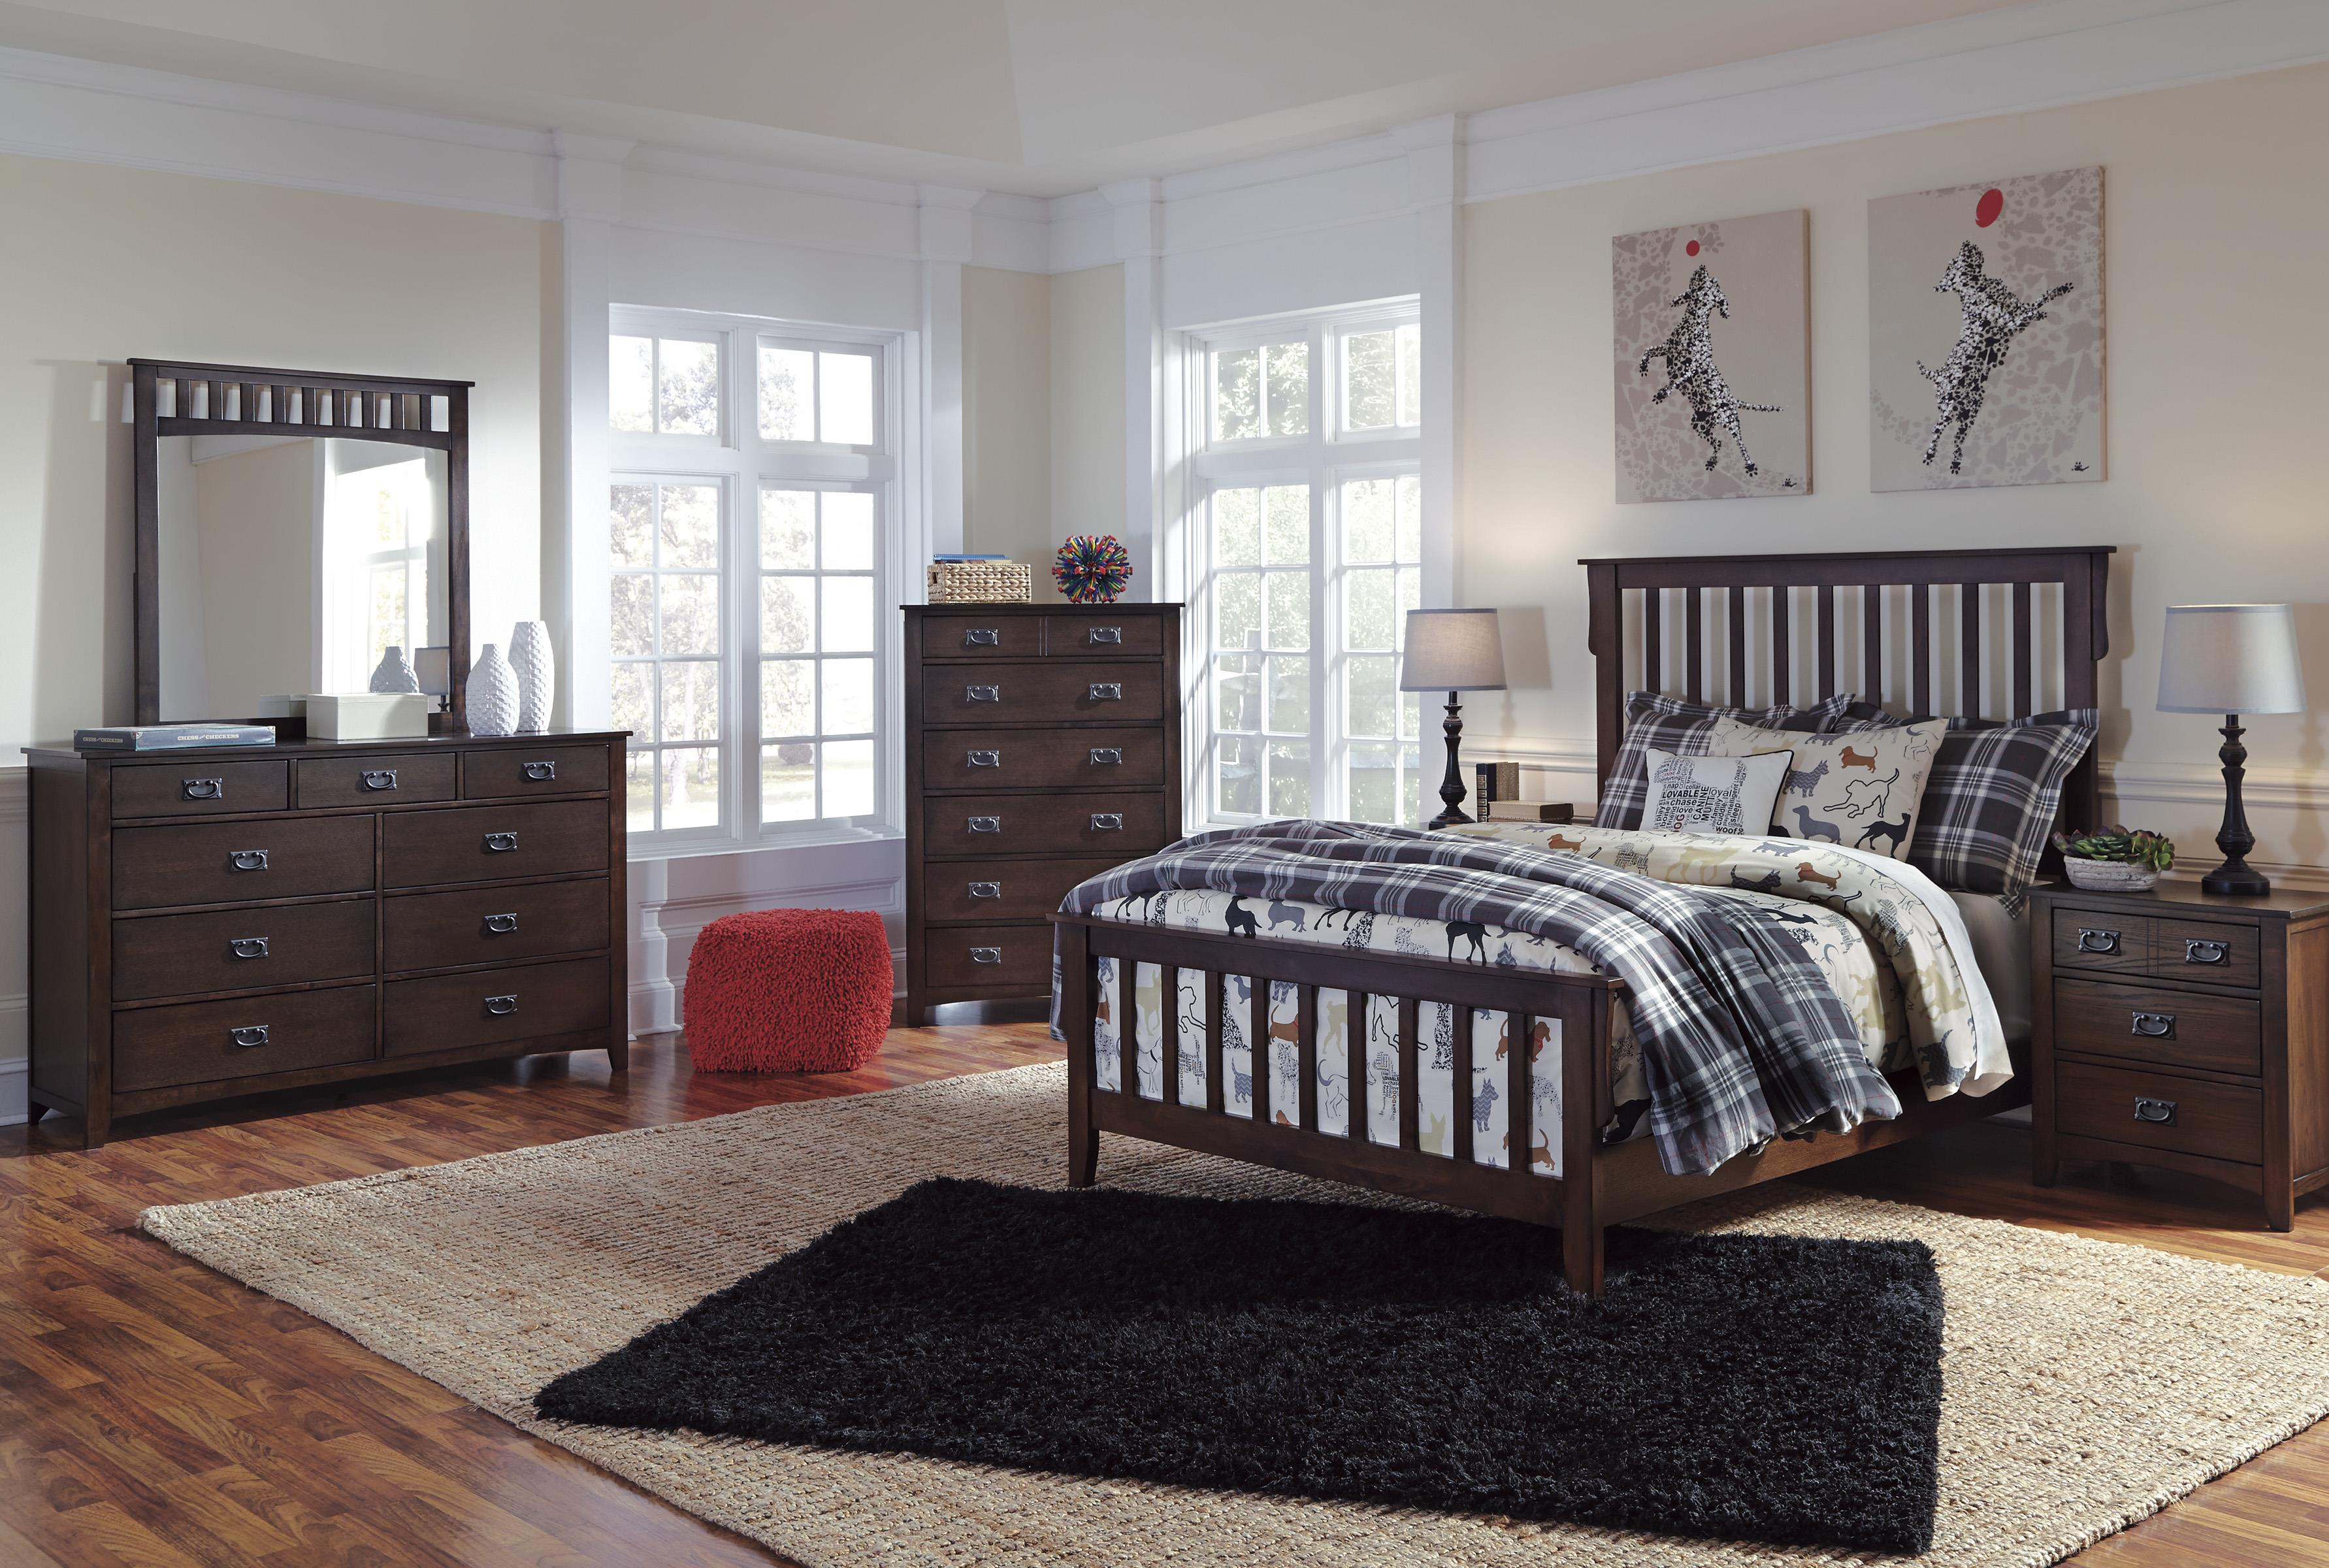 Signature Design by Ashley Strenton Queen Bedroom Group - Item Number: B568 Q Bedroom Group